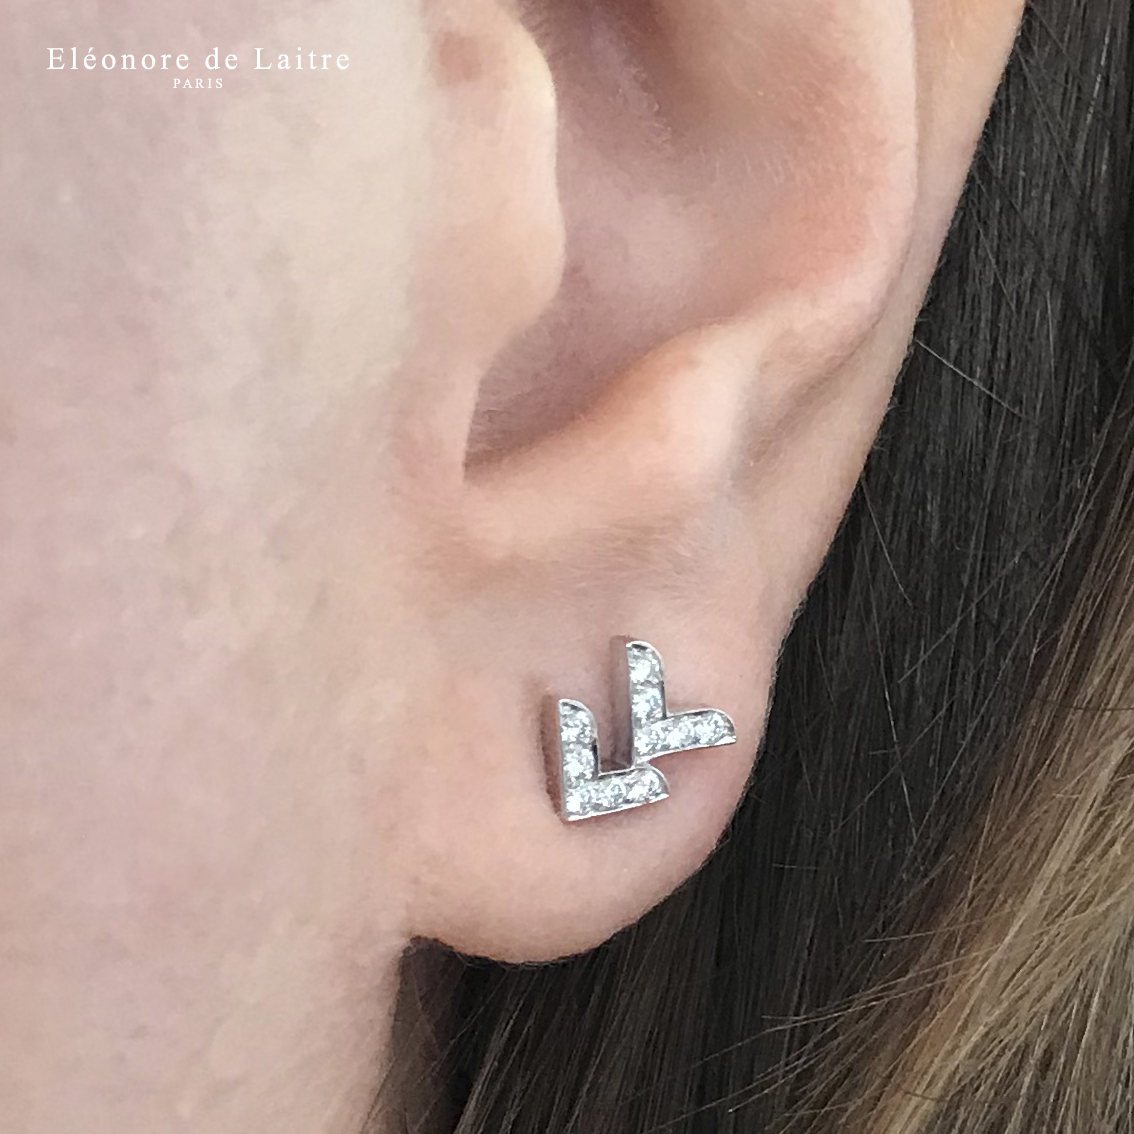 Collection Couture - puce d'oreille Dentelle VV - diamants, or gris.